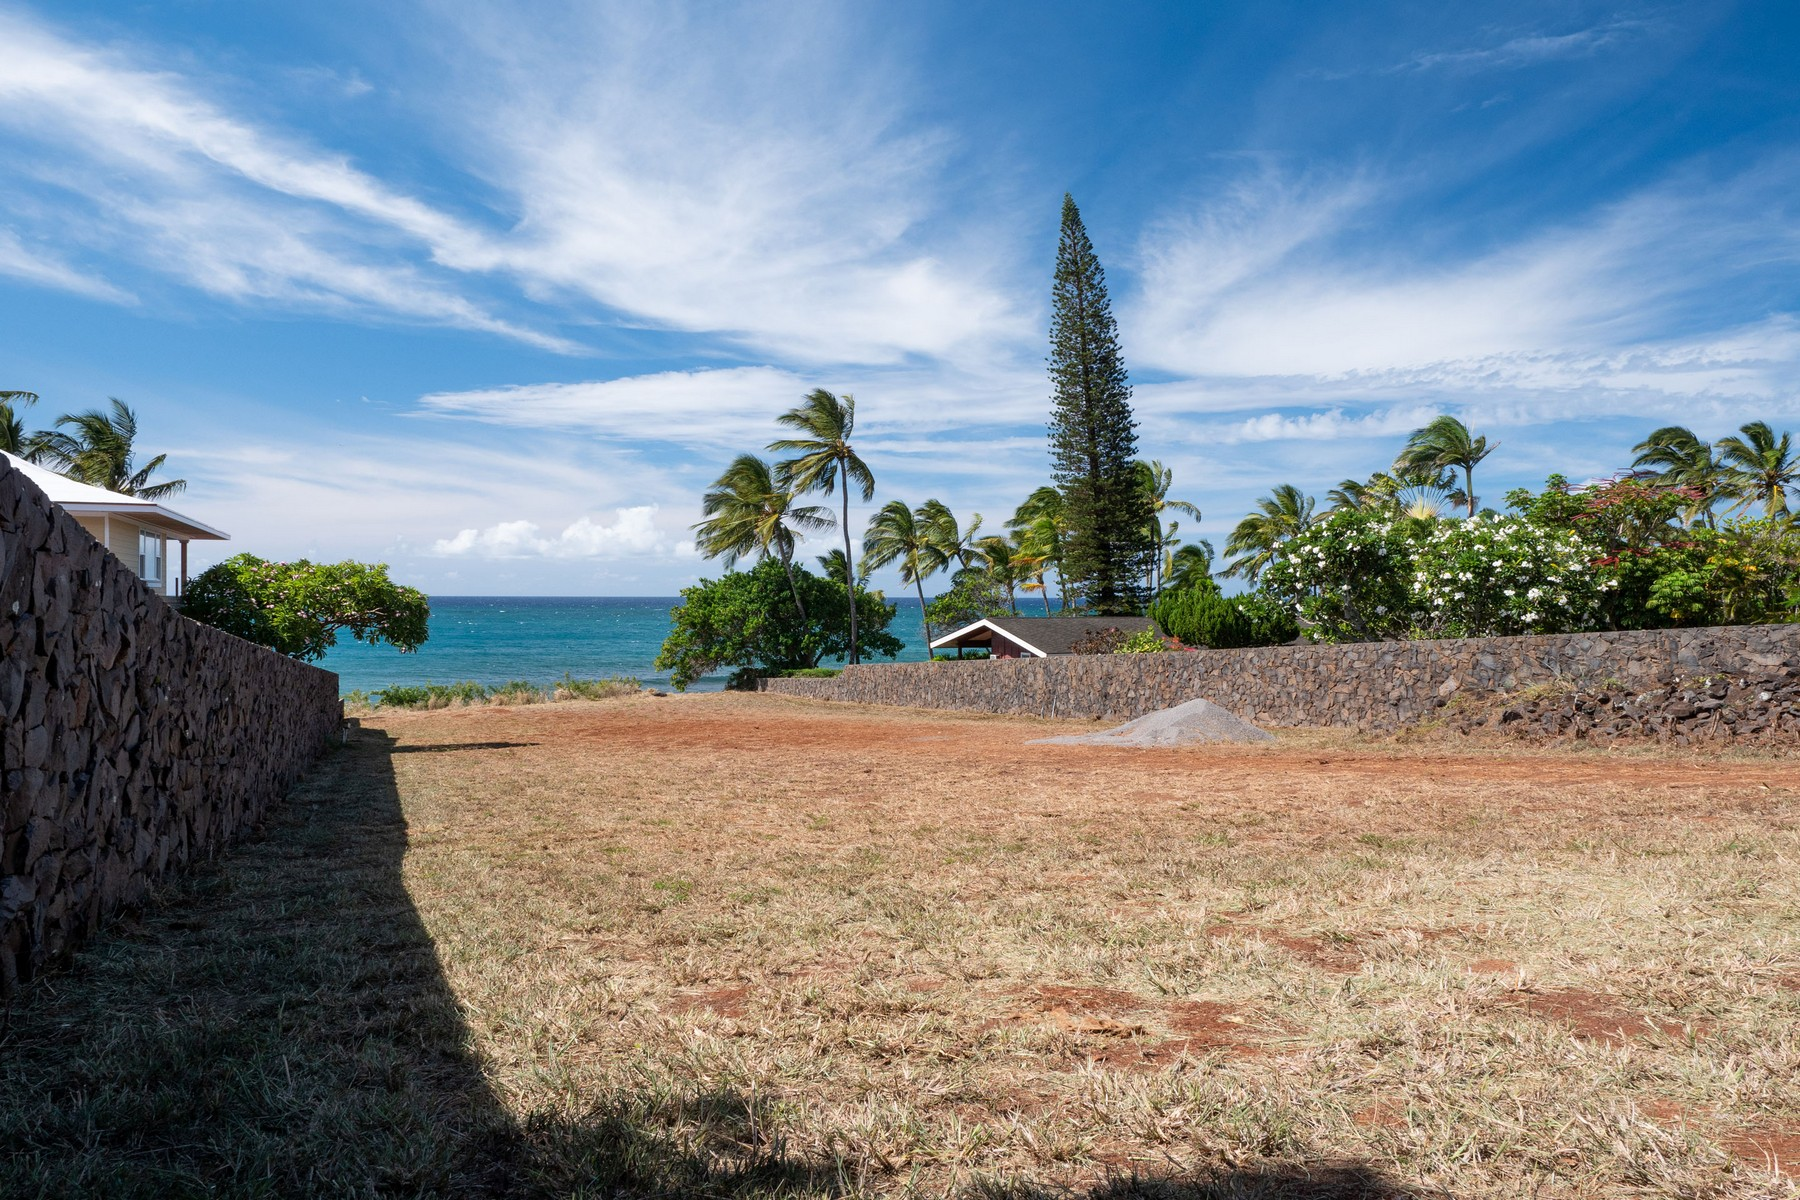 Land for Sale at Epic North Shore Oceanfront Lot 531 Hana Hwy Paia, Hawaii 96779 United States